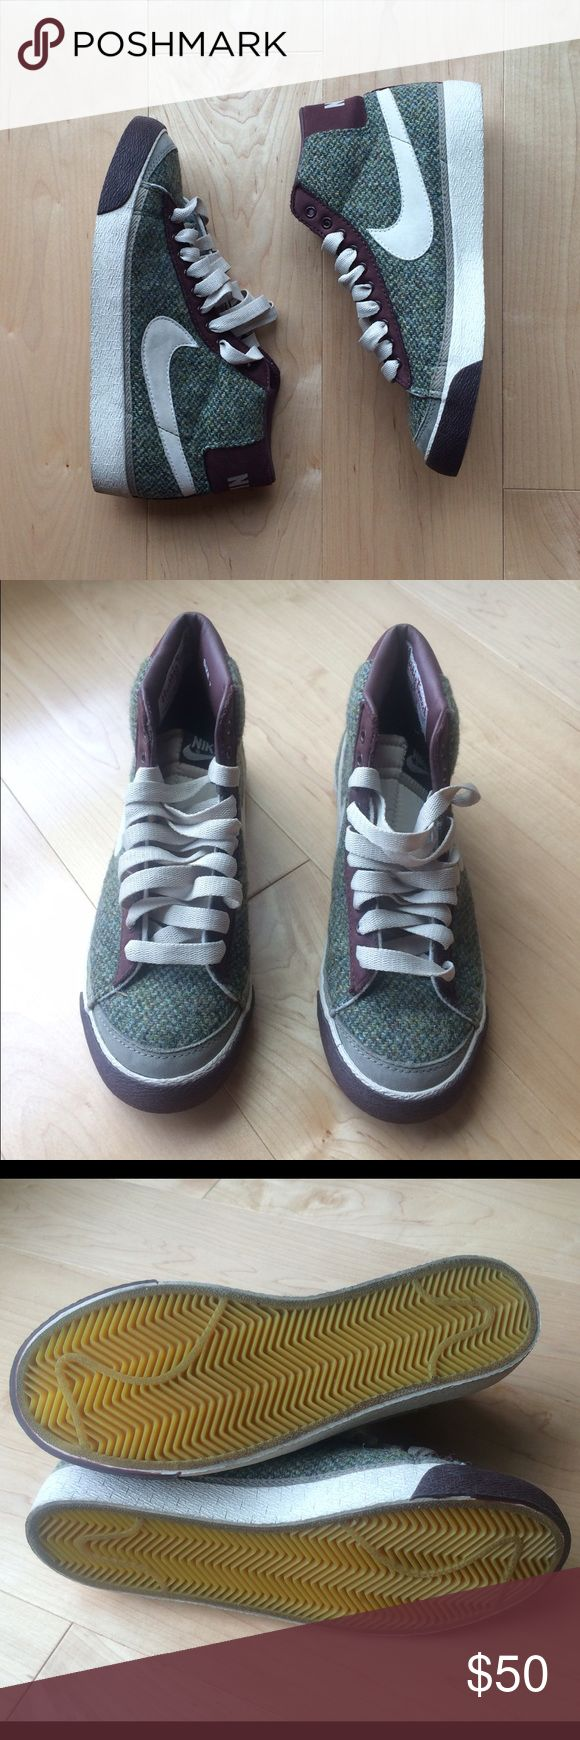 Harris Tweed Nike Hi Tops Very Good condition. Worn a handful of times! Nike Shoes Athletic Shoes